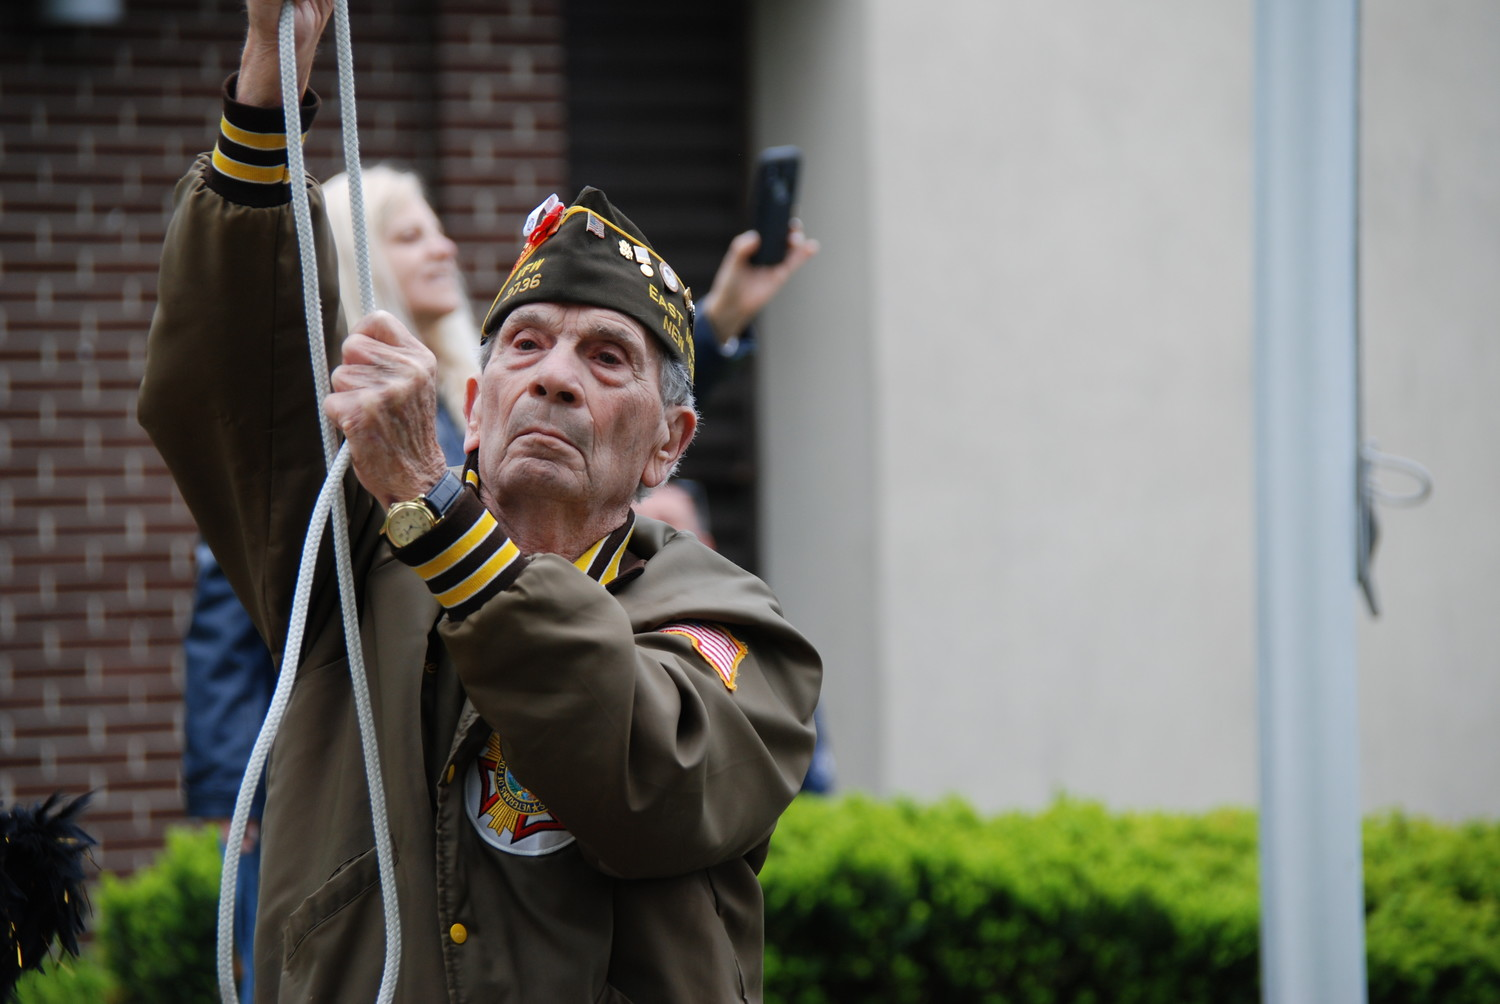 Stephen Gismondi, of Veterans of Foreign Wars Post 2736, lowered the American flag to half-staff during the community's Memorial Day ceremony last year.